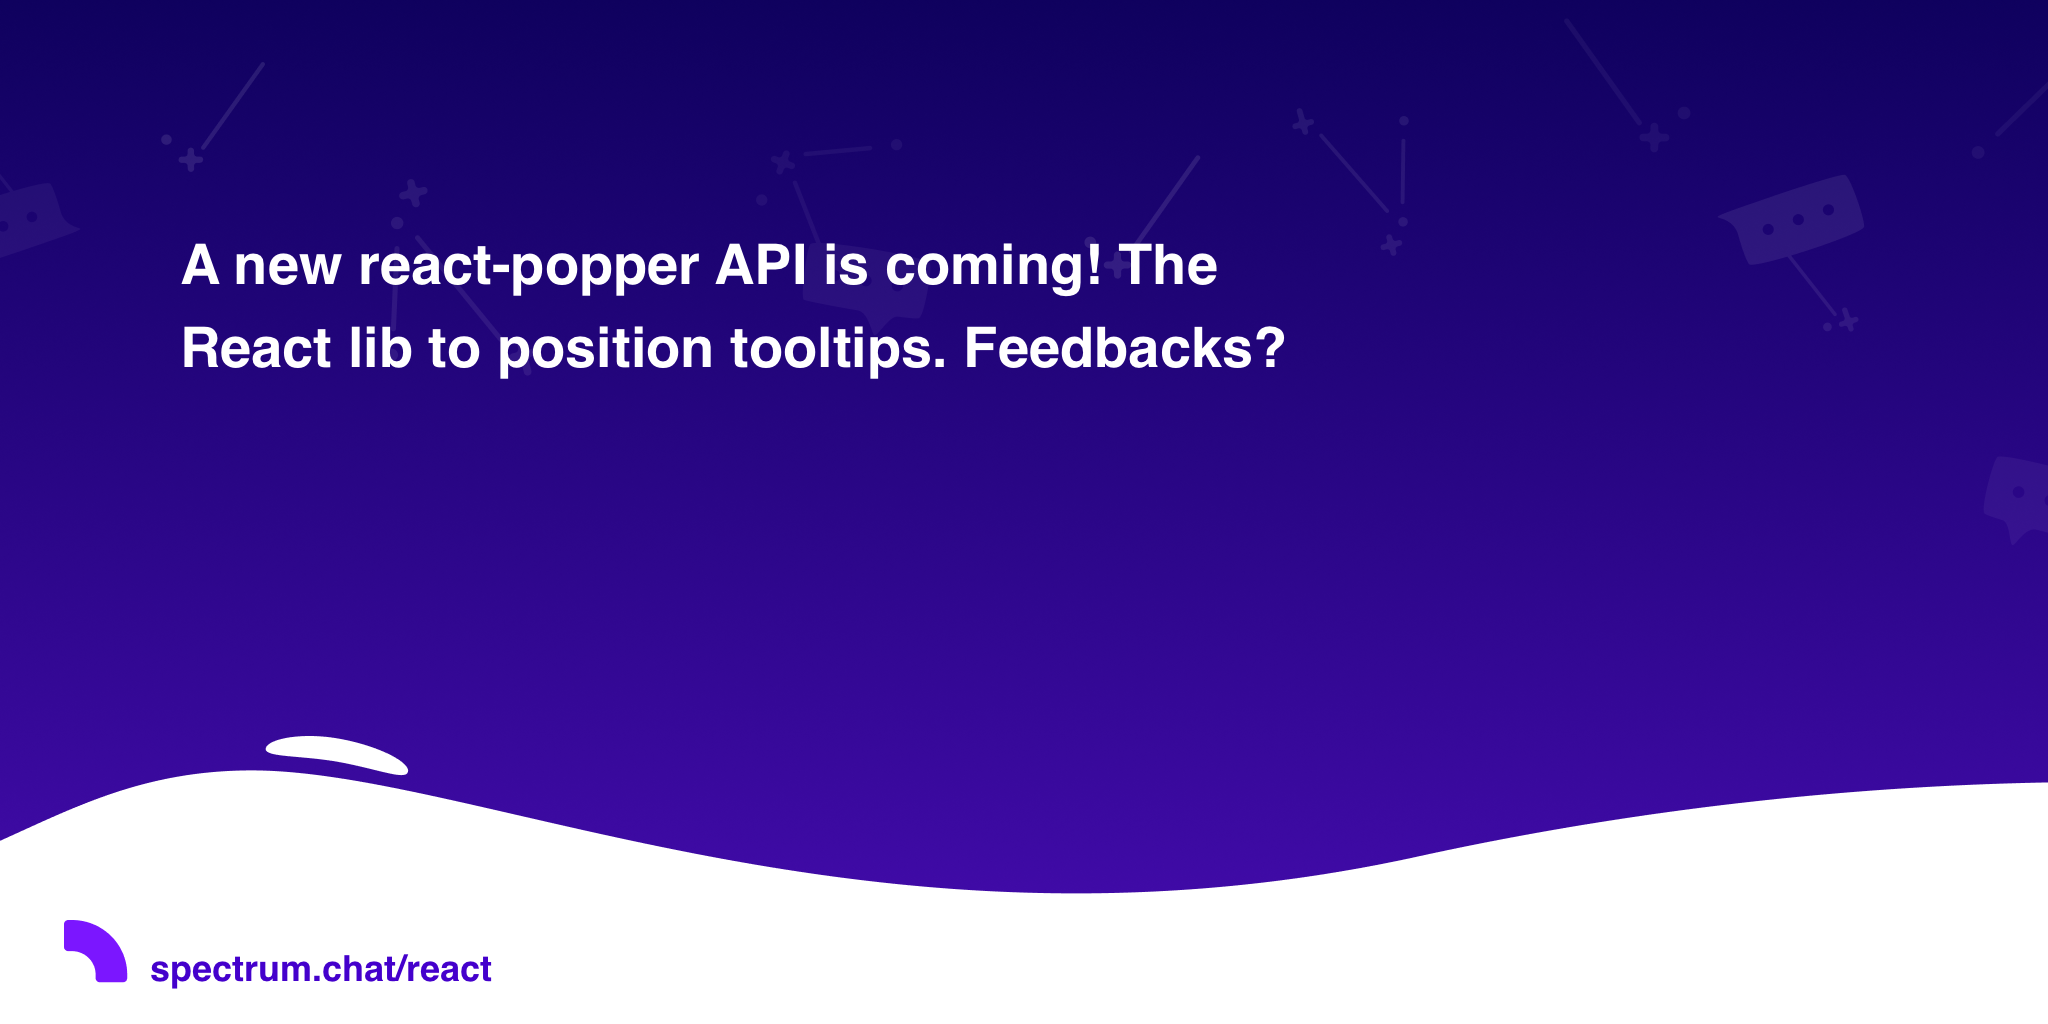 A new react-popper API is coming! The React lib to position tooltips